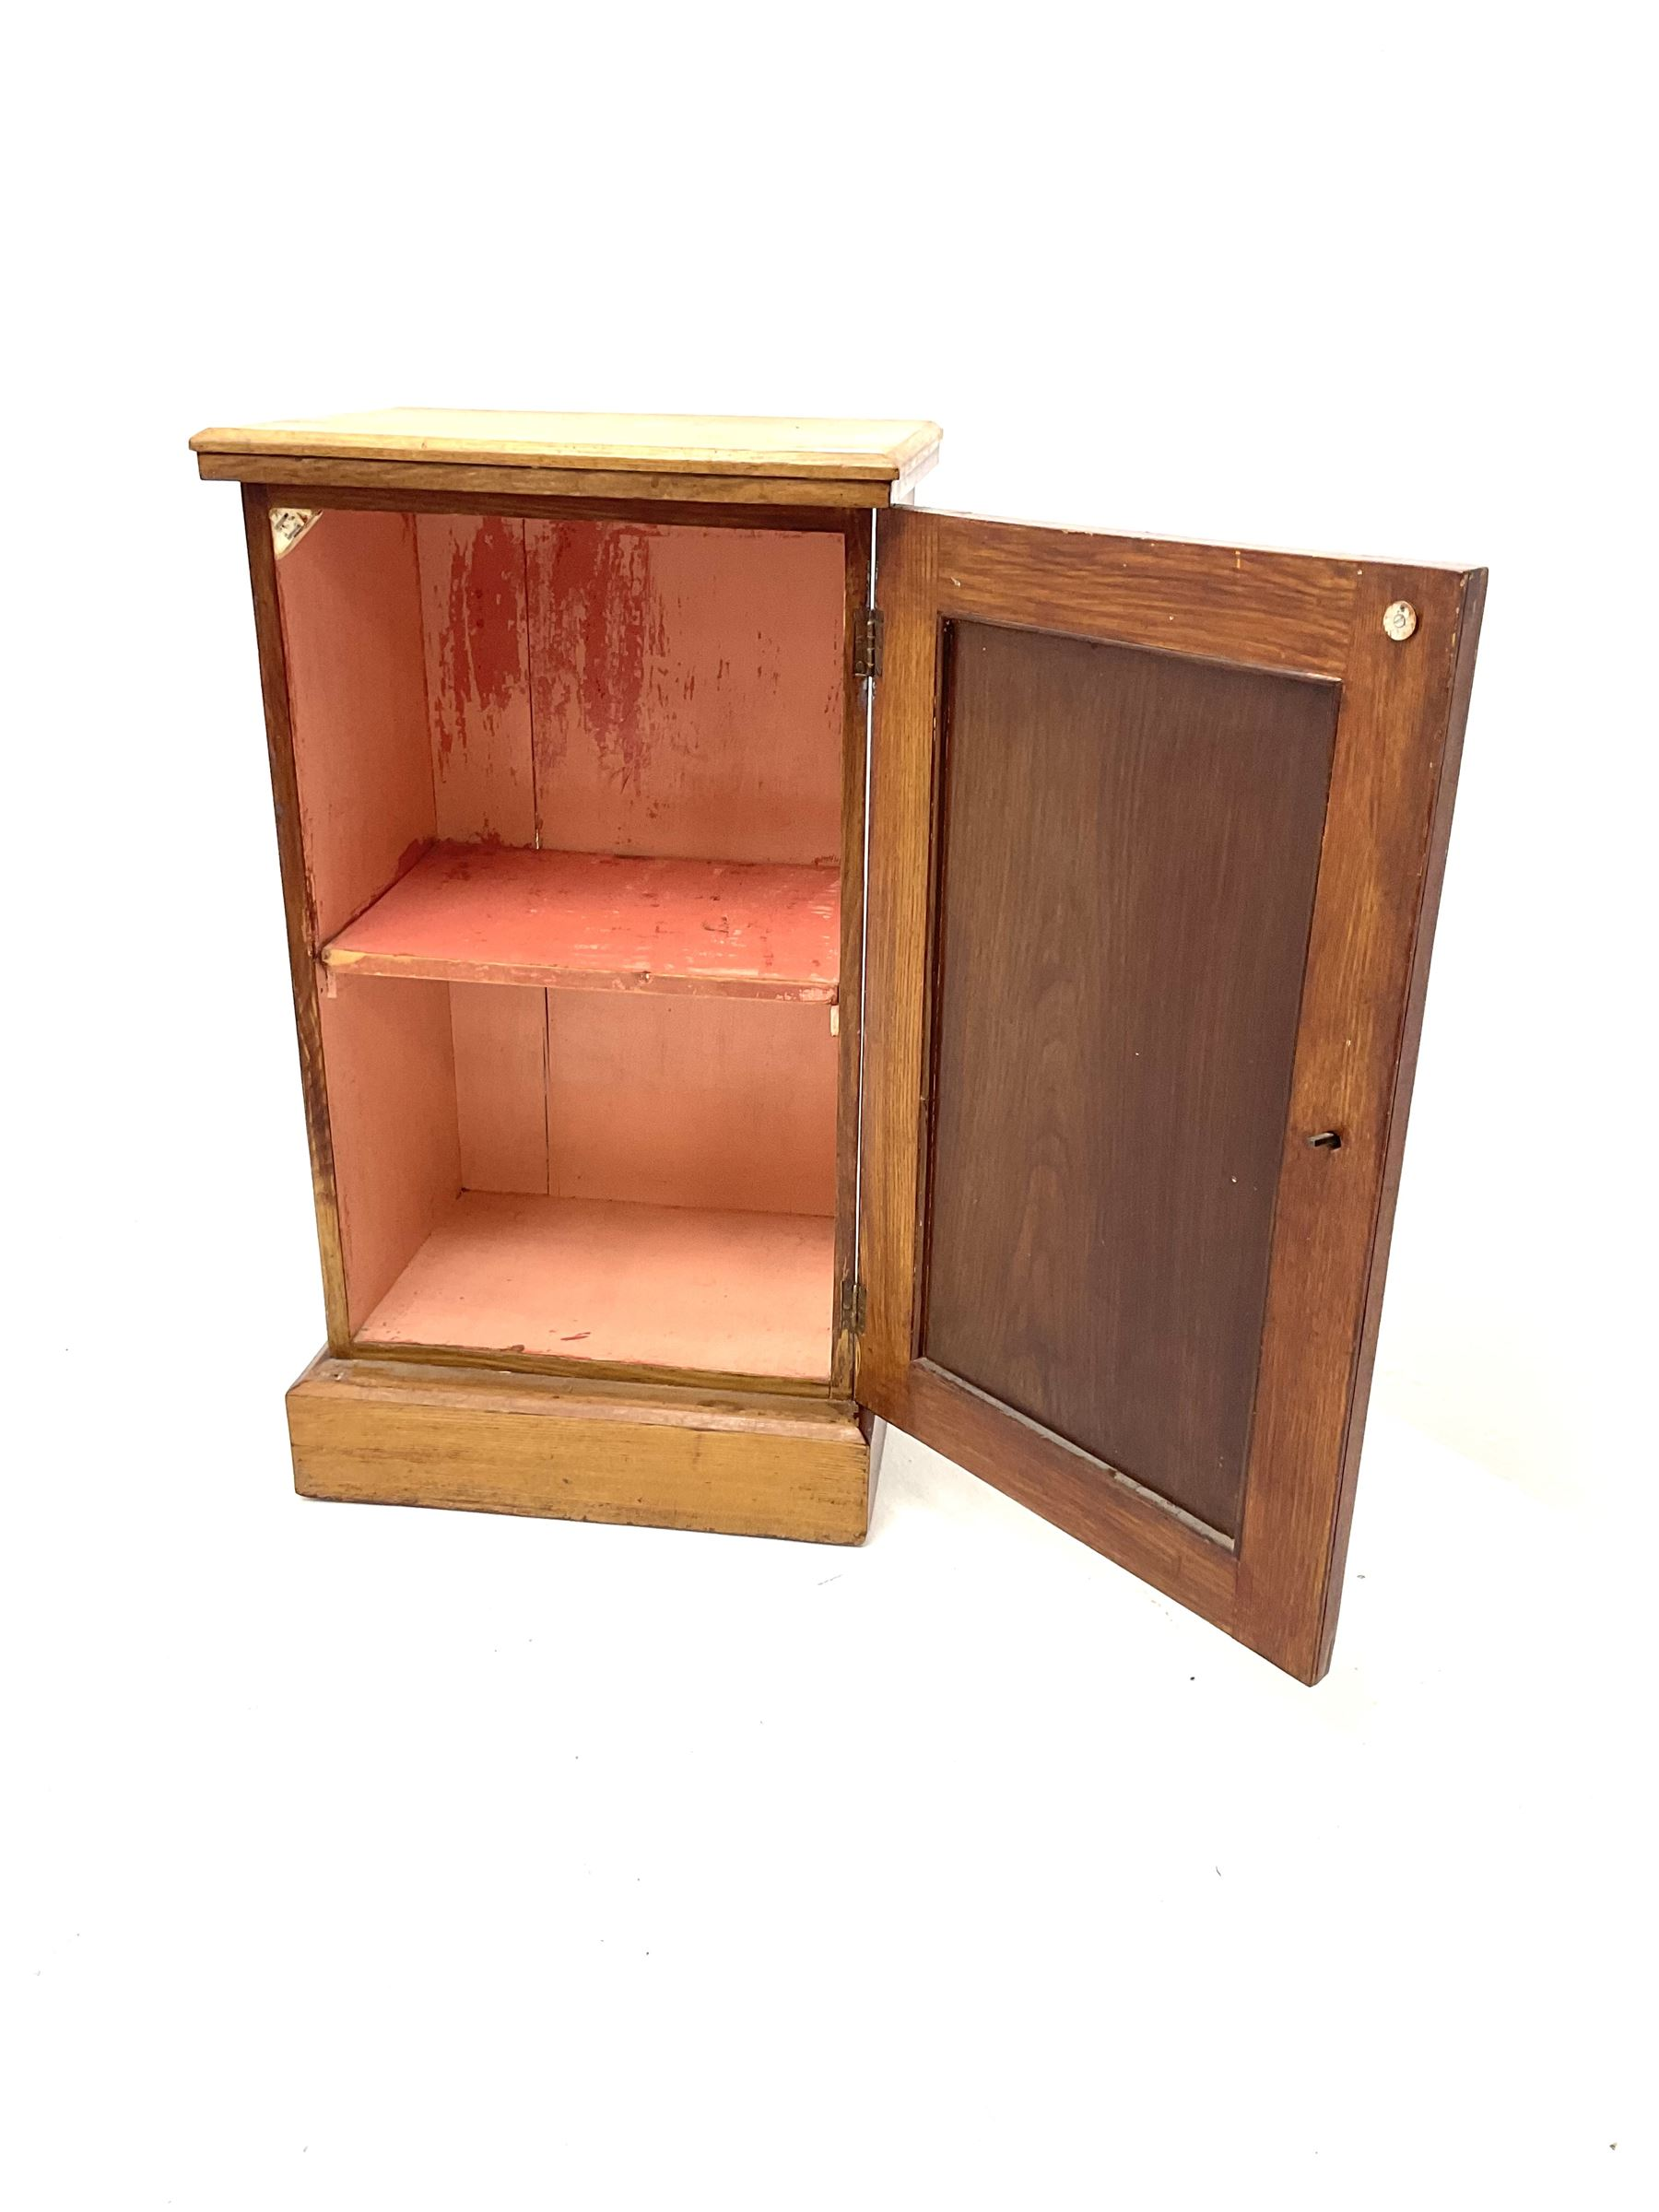 Early 20th century elm bedside cabinet - Image 2 of 3